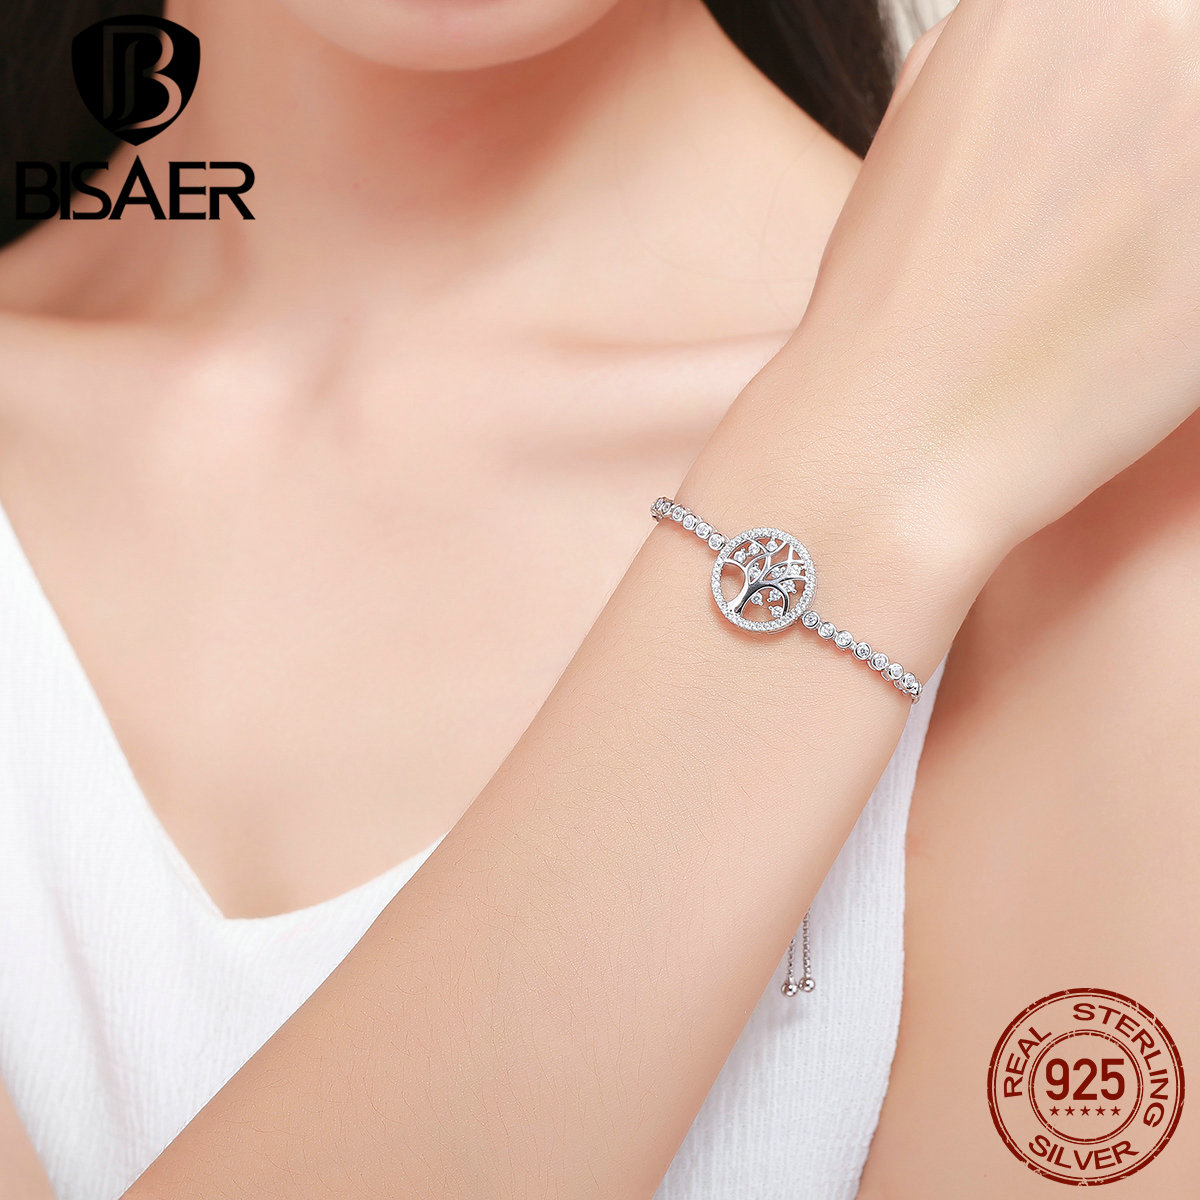 sale j bracelets diamond more gold jewelry z for bracelet zircon blue id at